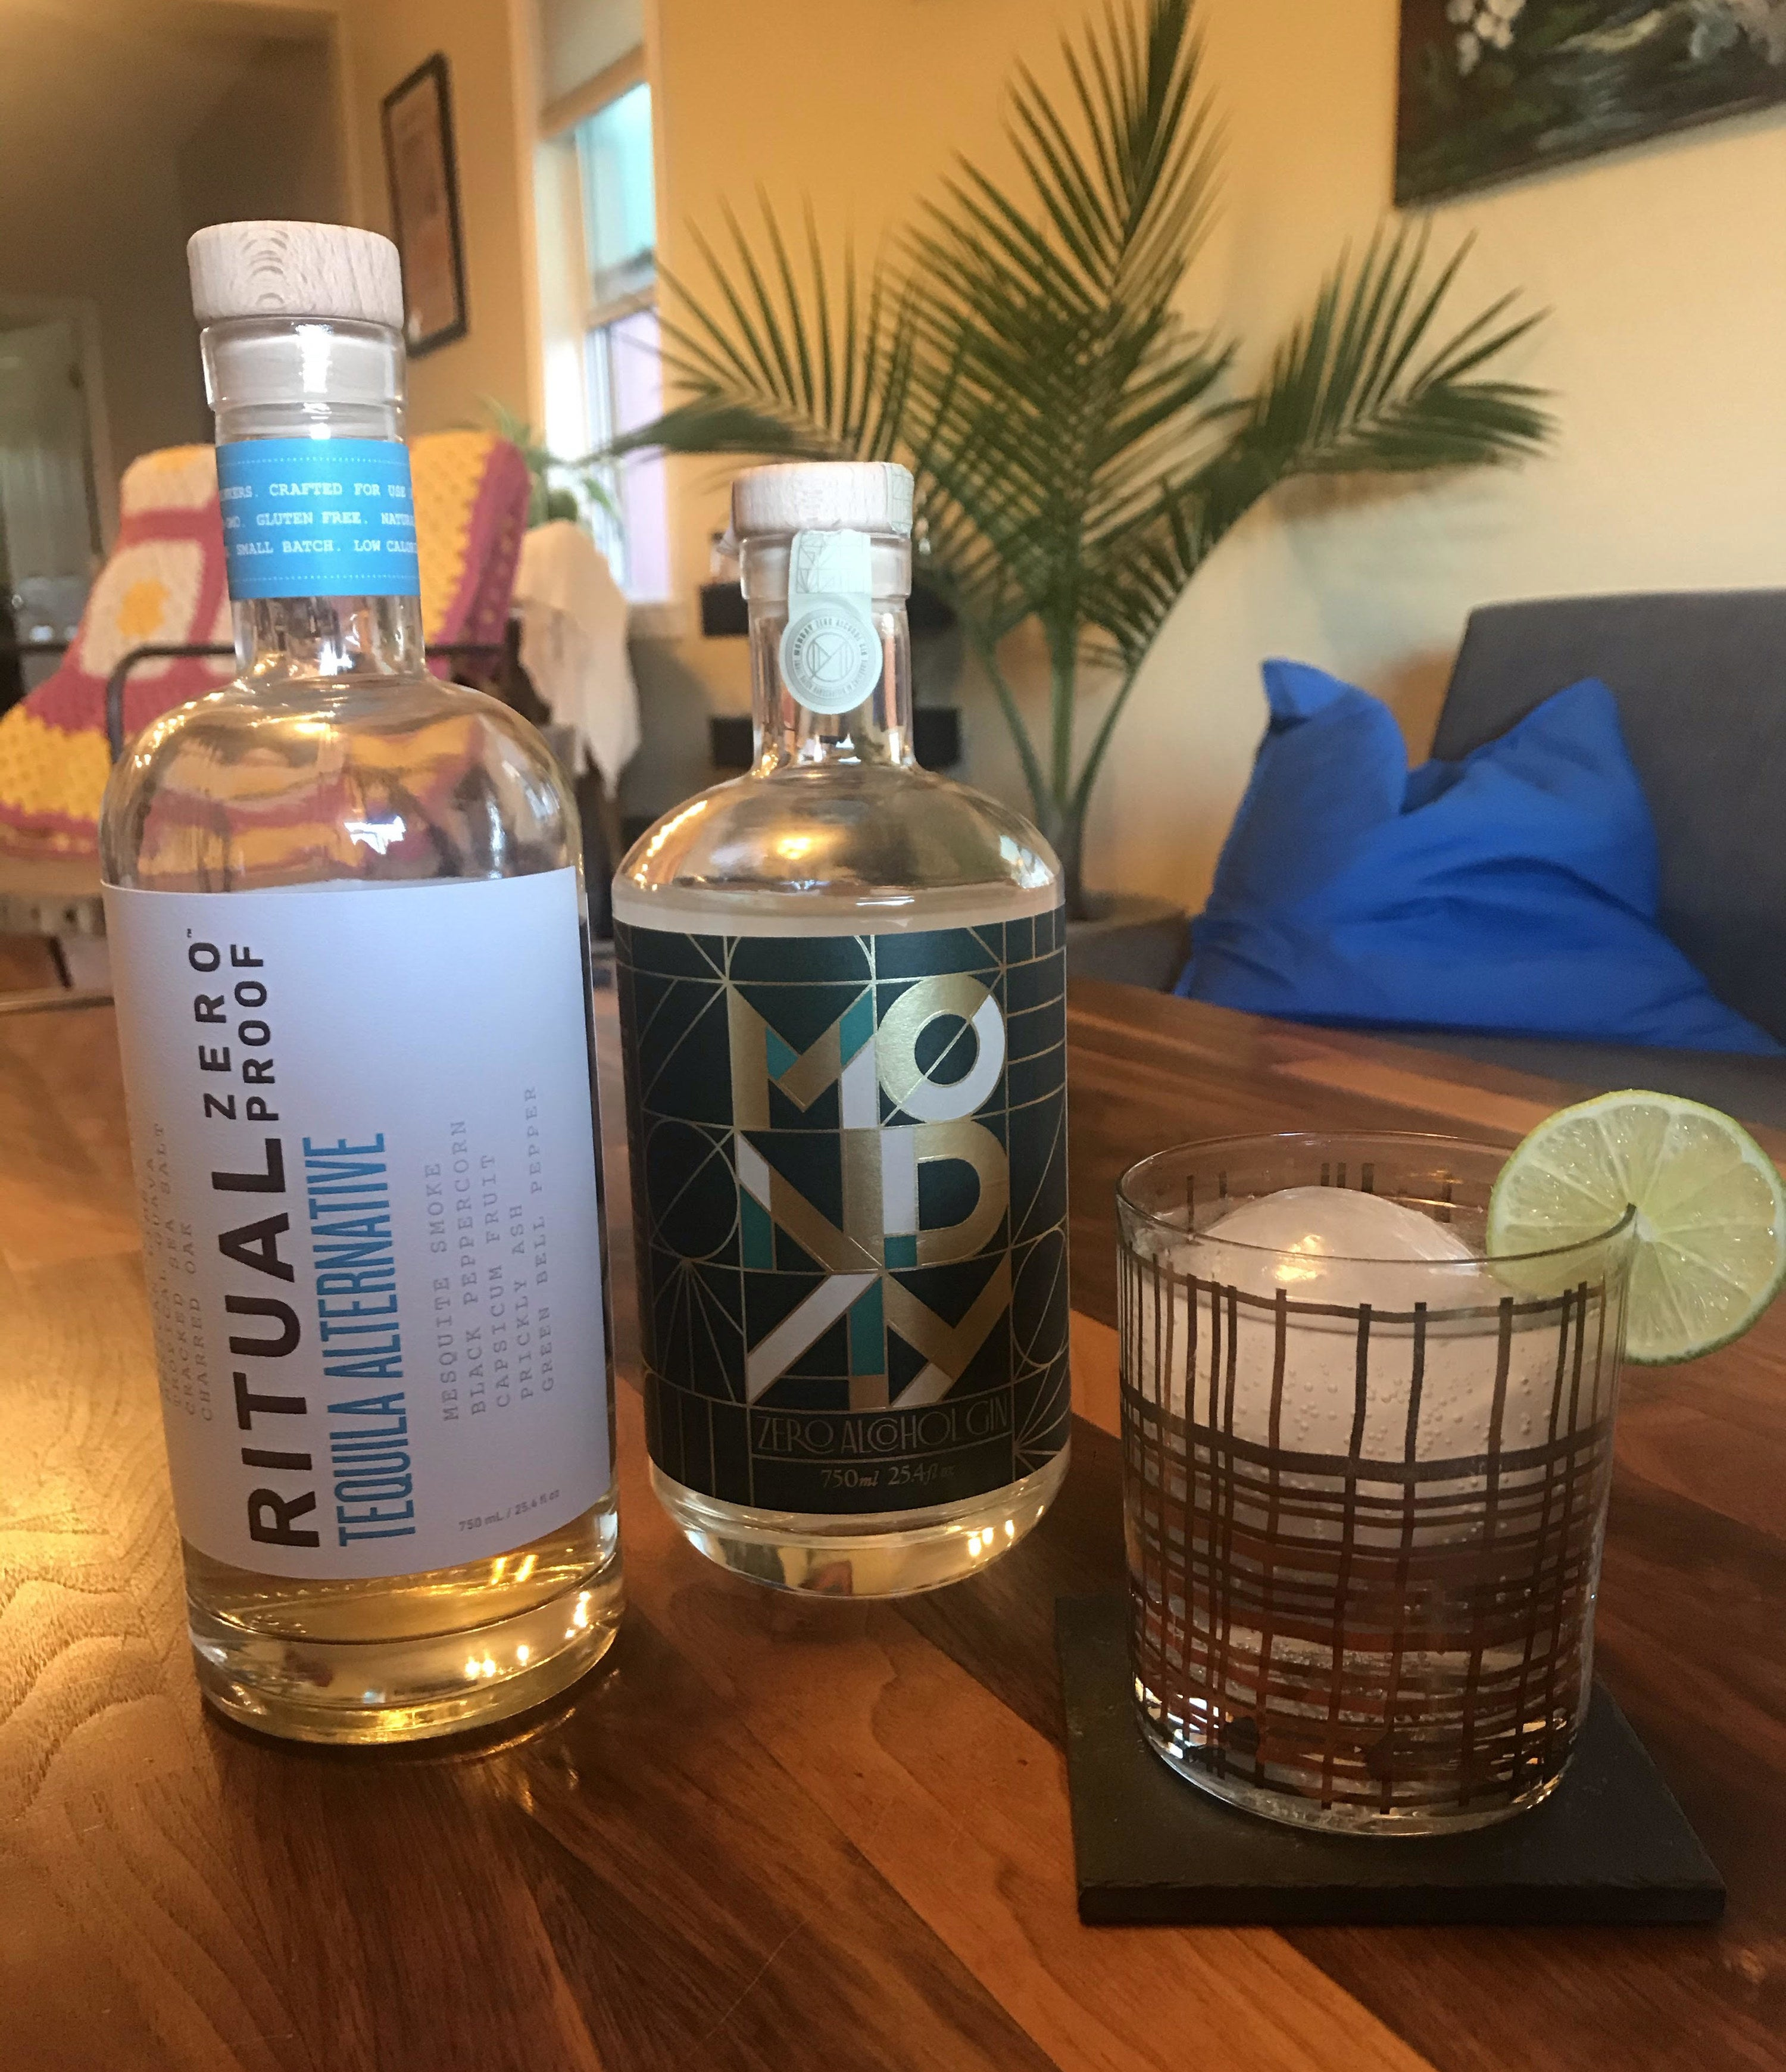 the writer's bottles of non-alcoholic tequila and gin next to a mocktail